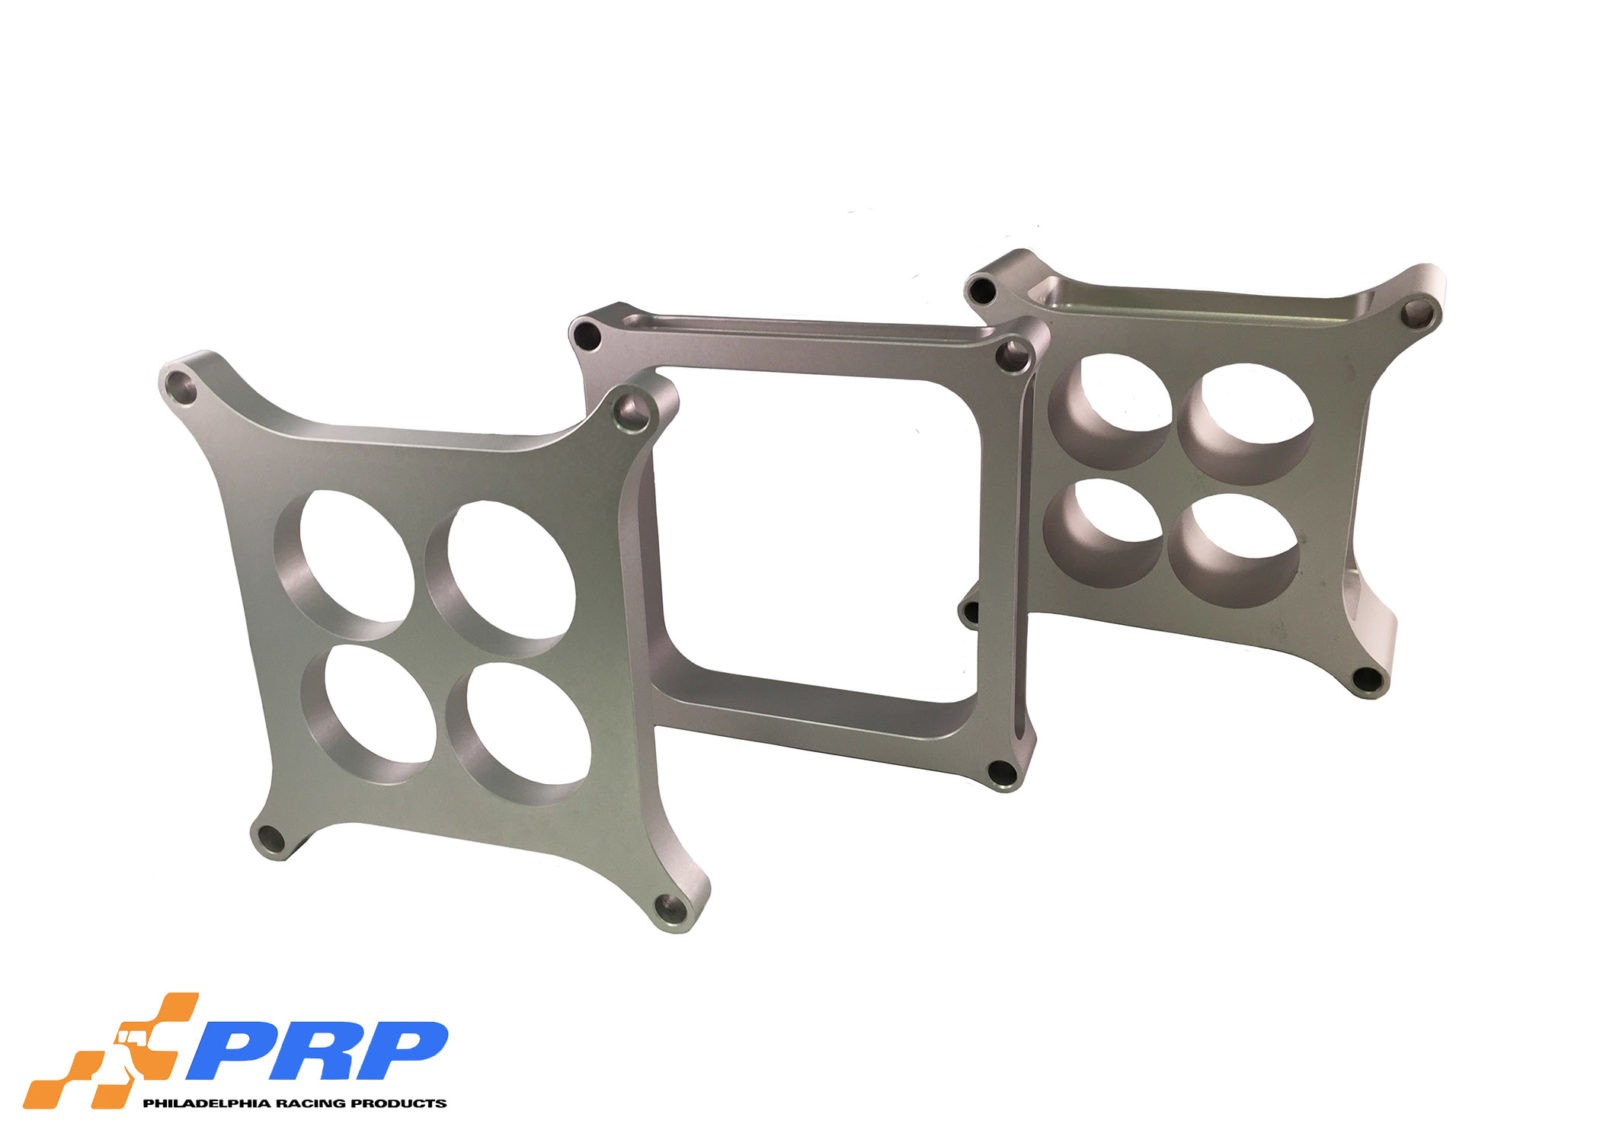 Clear Carburetor Spacer Plates made by PRP Racing Products